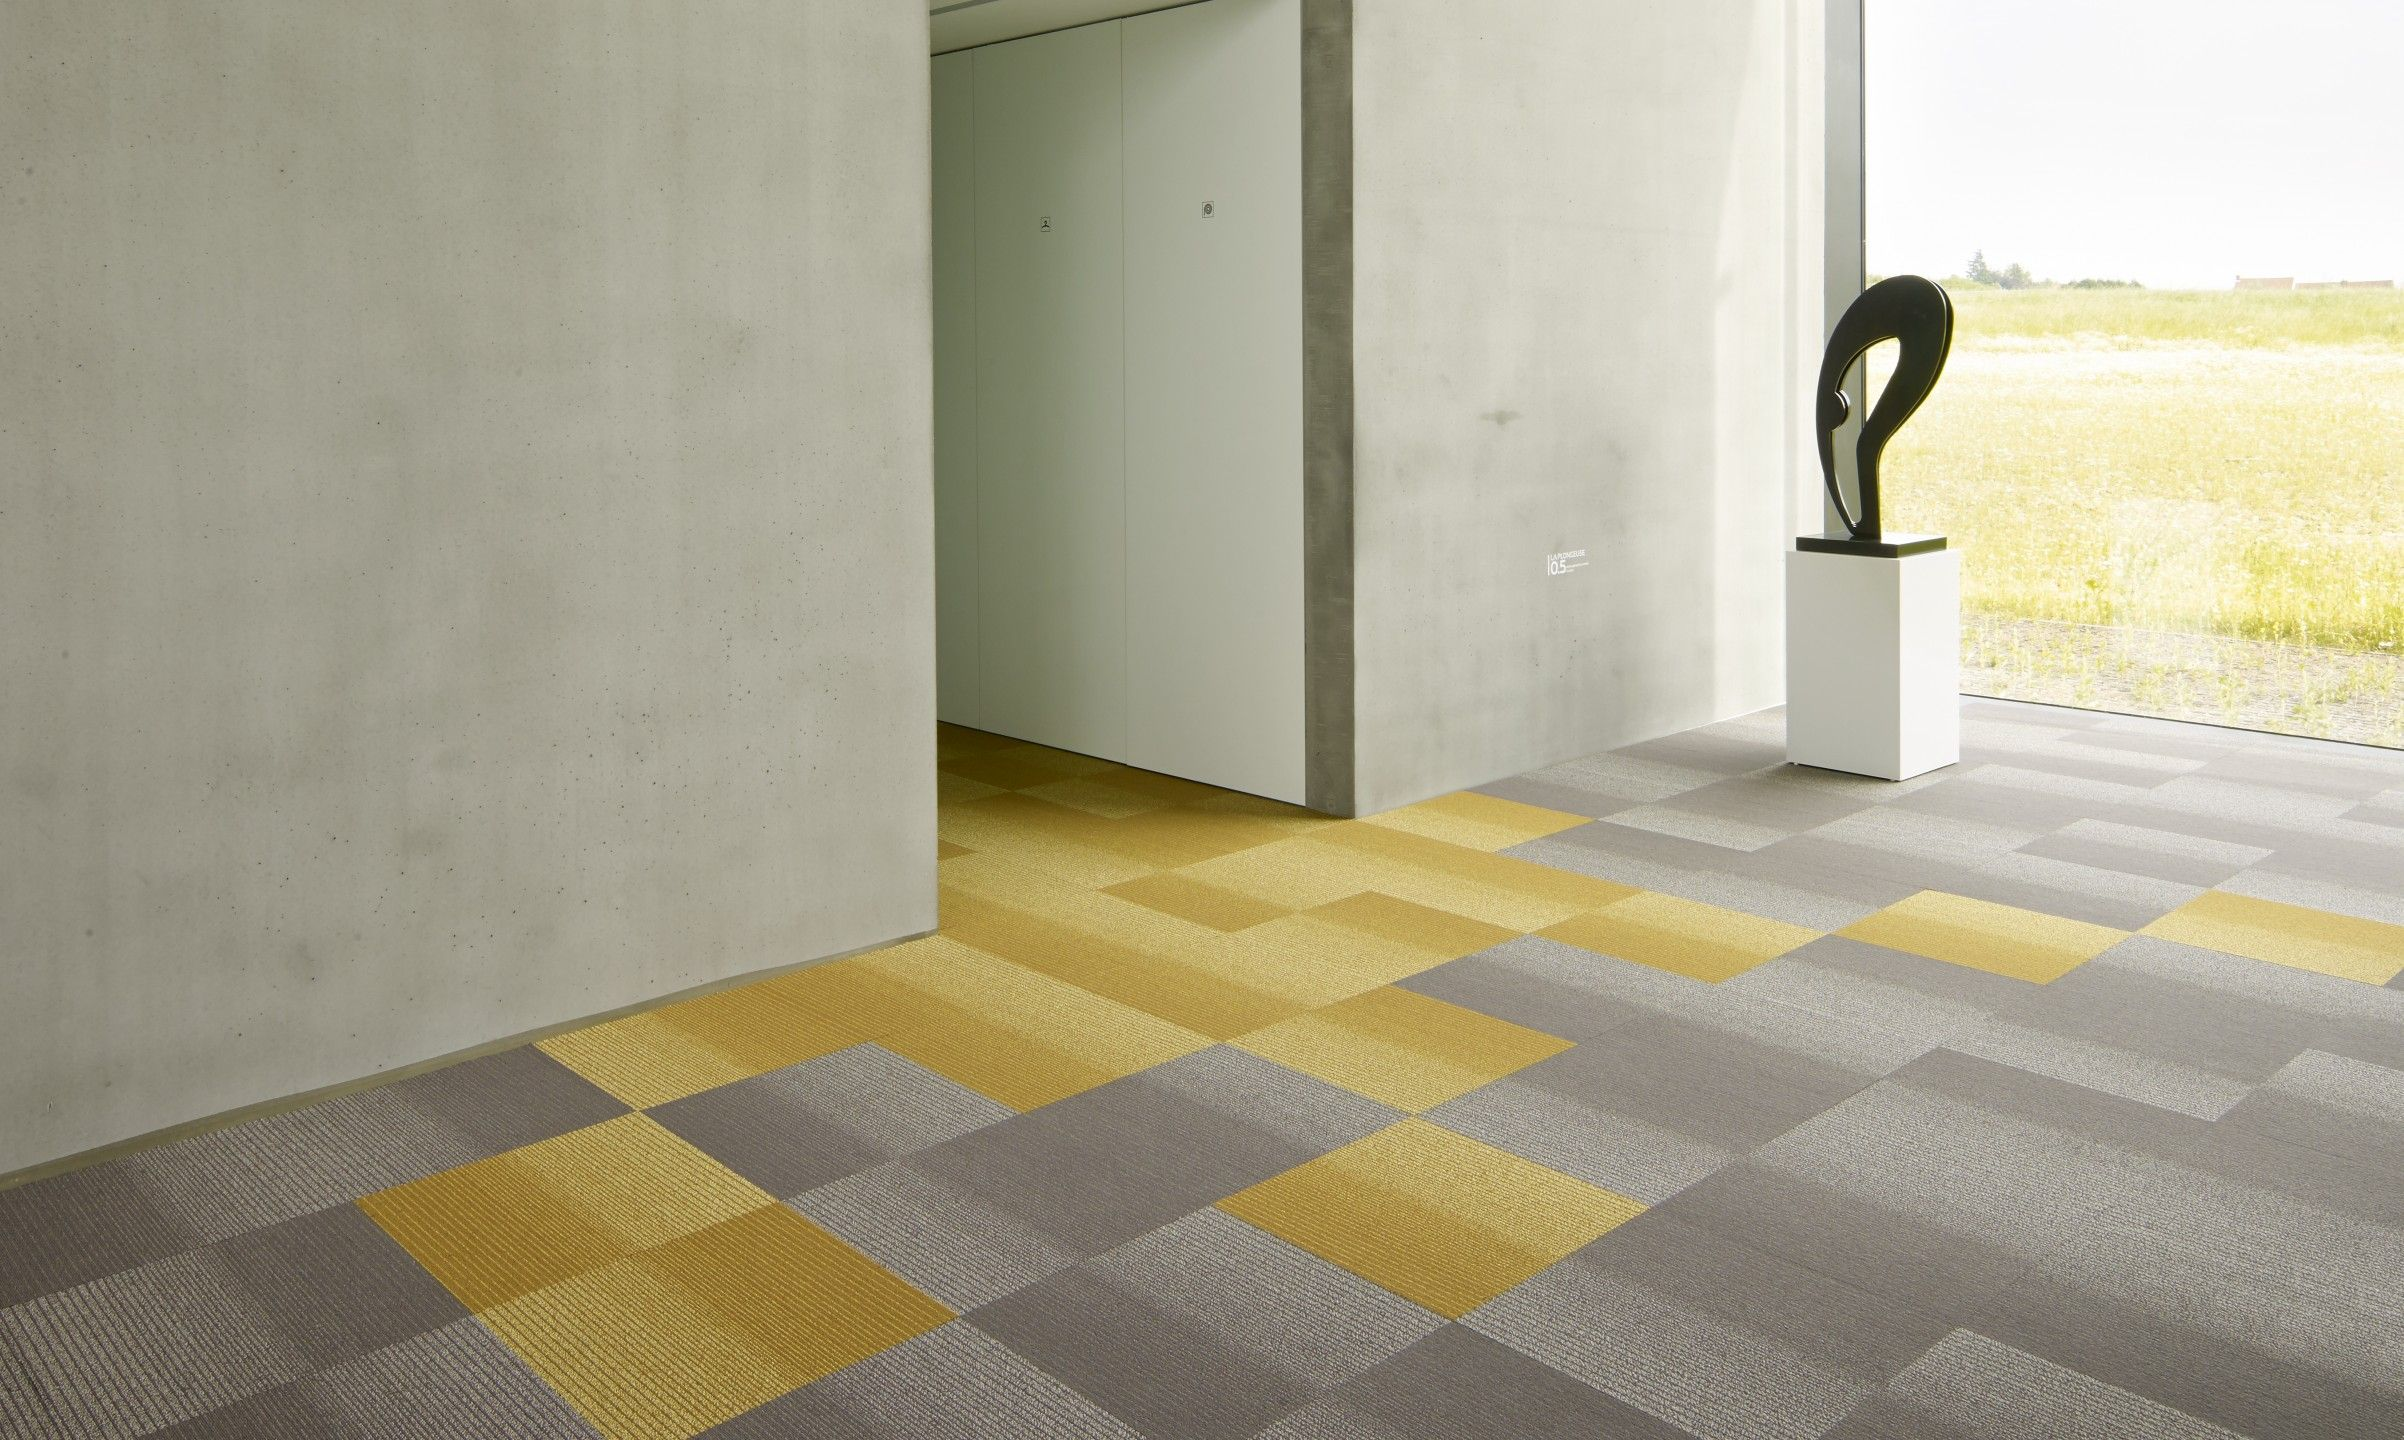 Commercial Carpet Suppliers Office Carpet Tile Selby Carpets Carpet Tiles Pinterest